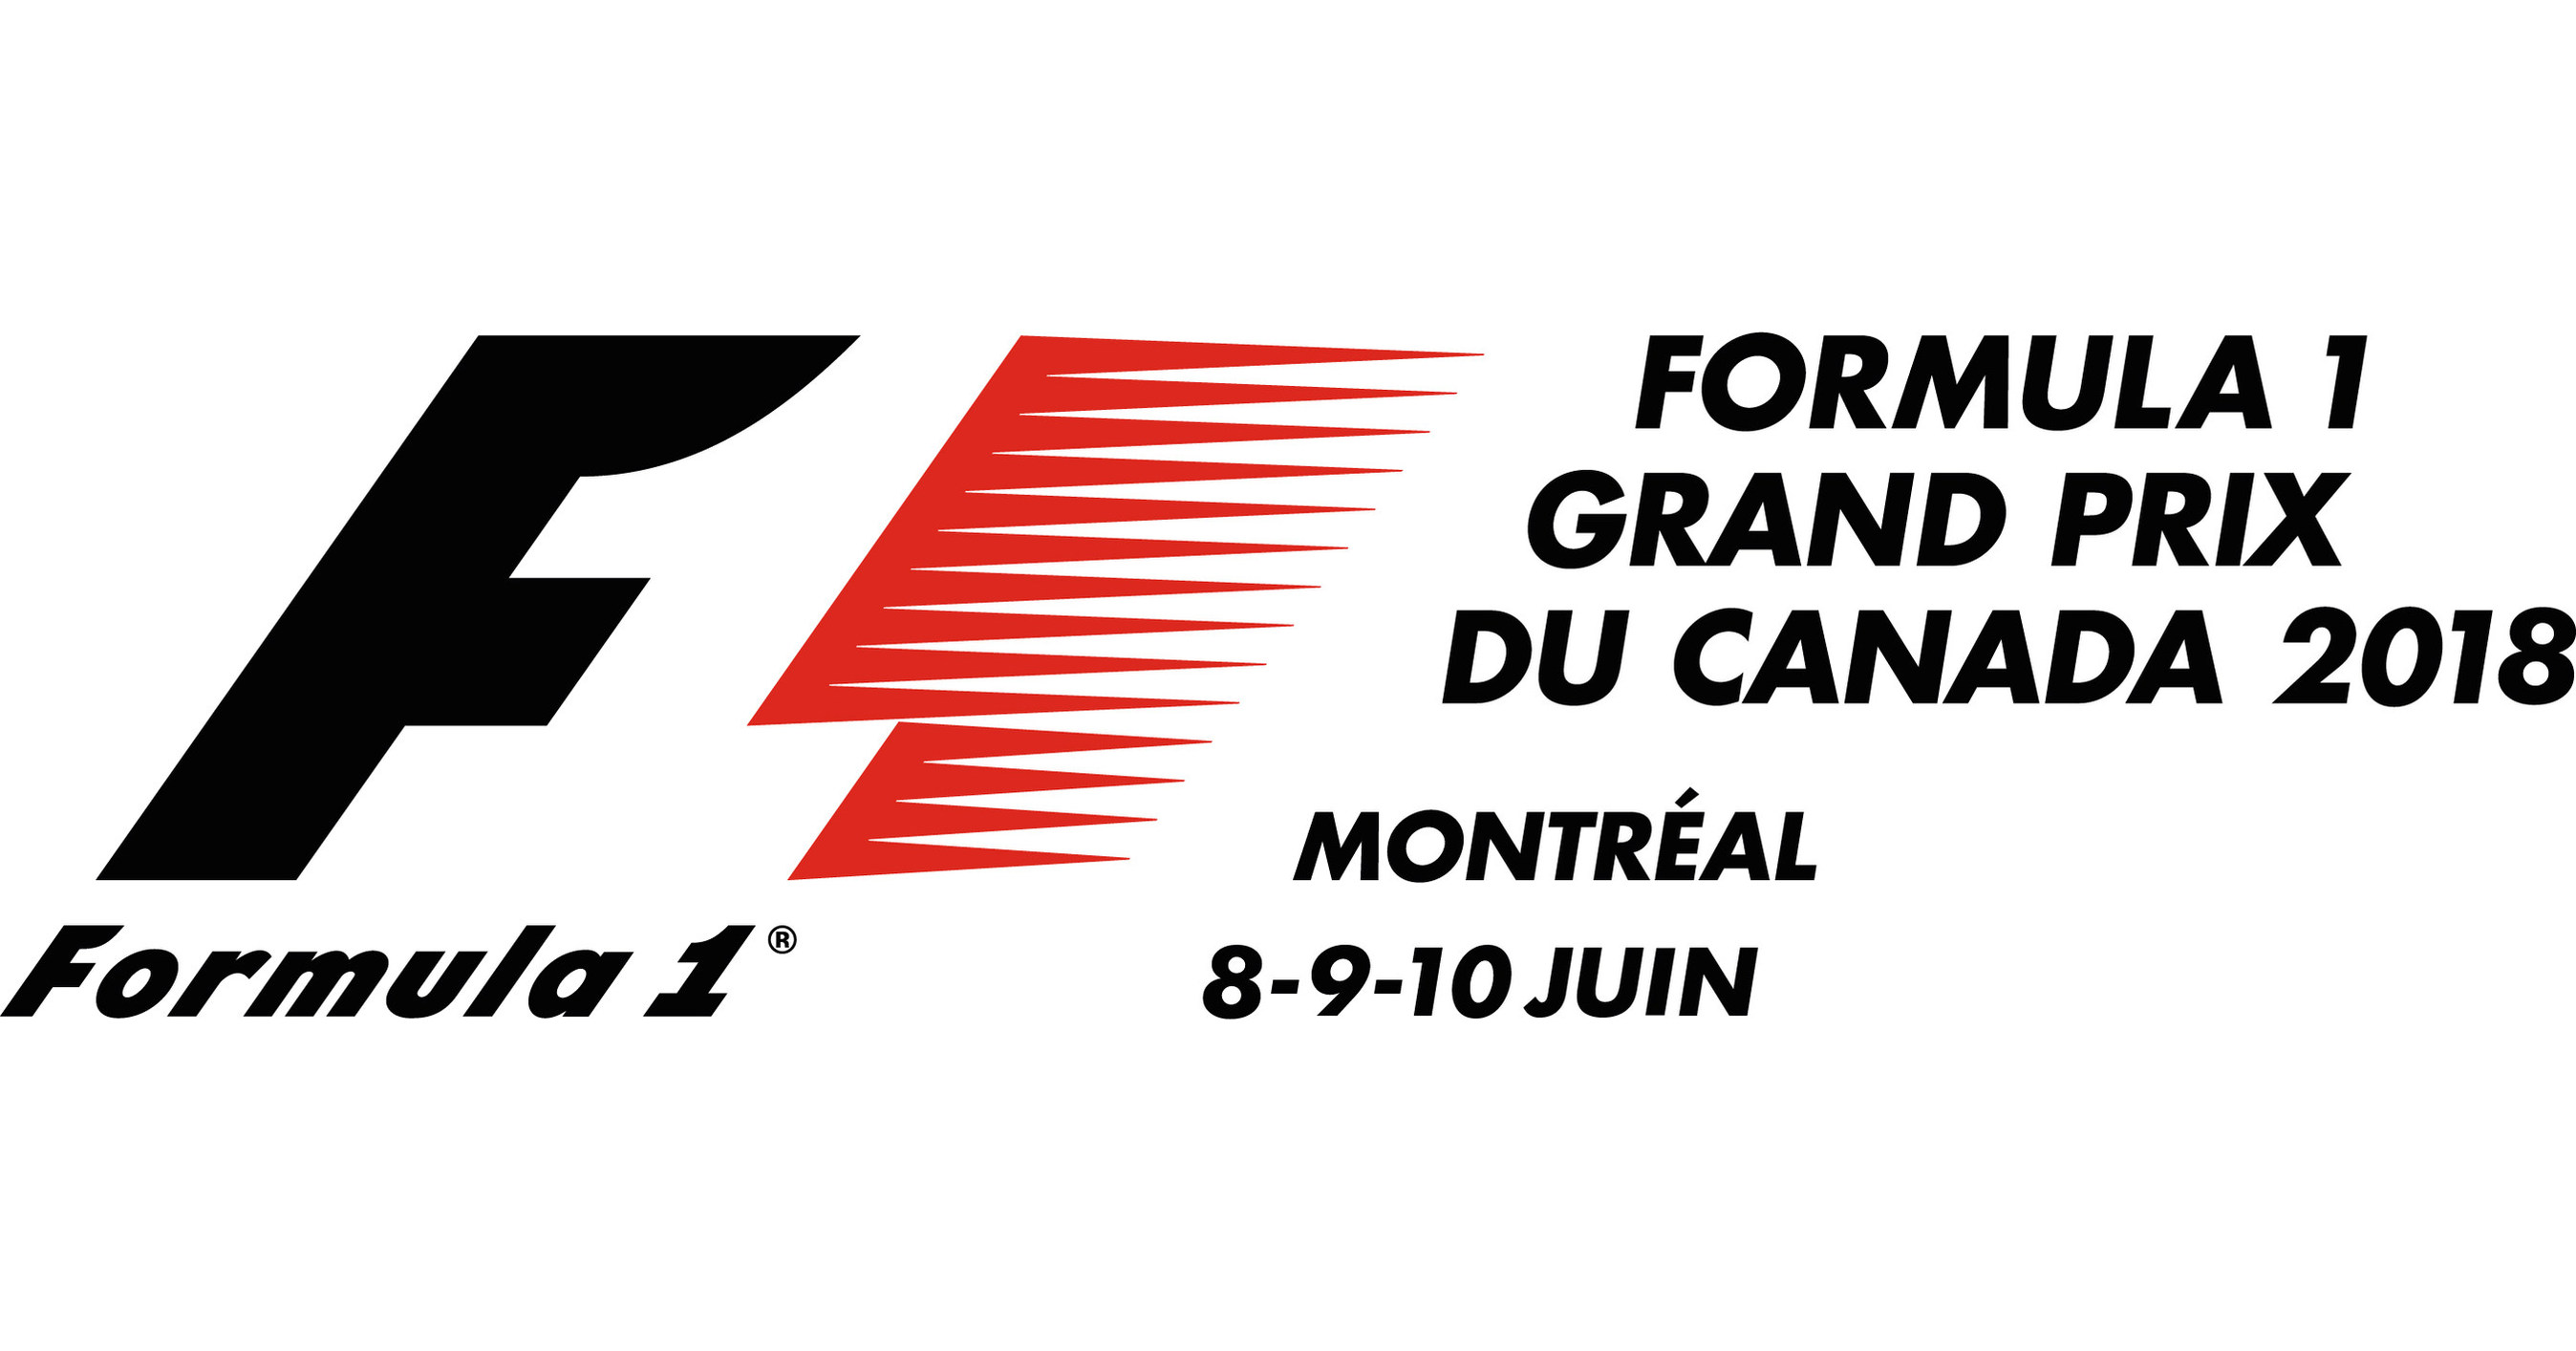 cnw le formula 1 grand prix du canada annonce que la tribune 24 sera rebaptis e la tribune. Black Bedroom Furniture Sets. Home Design Ideas